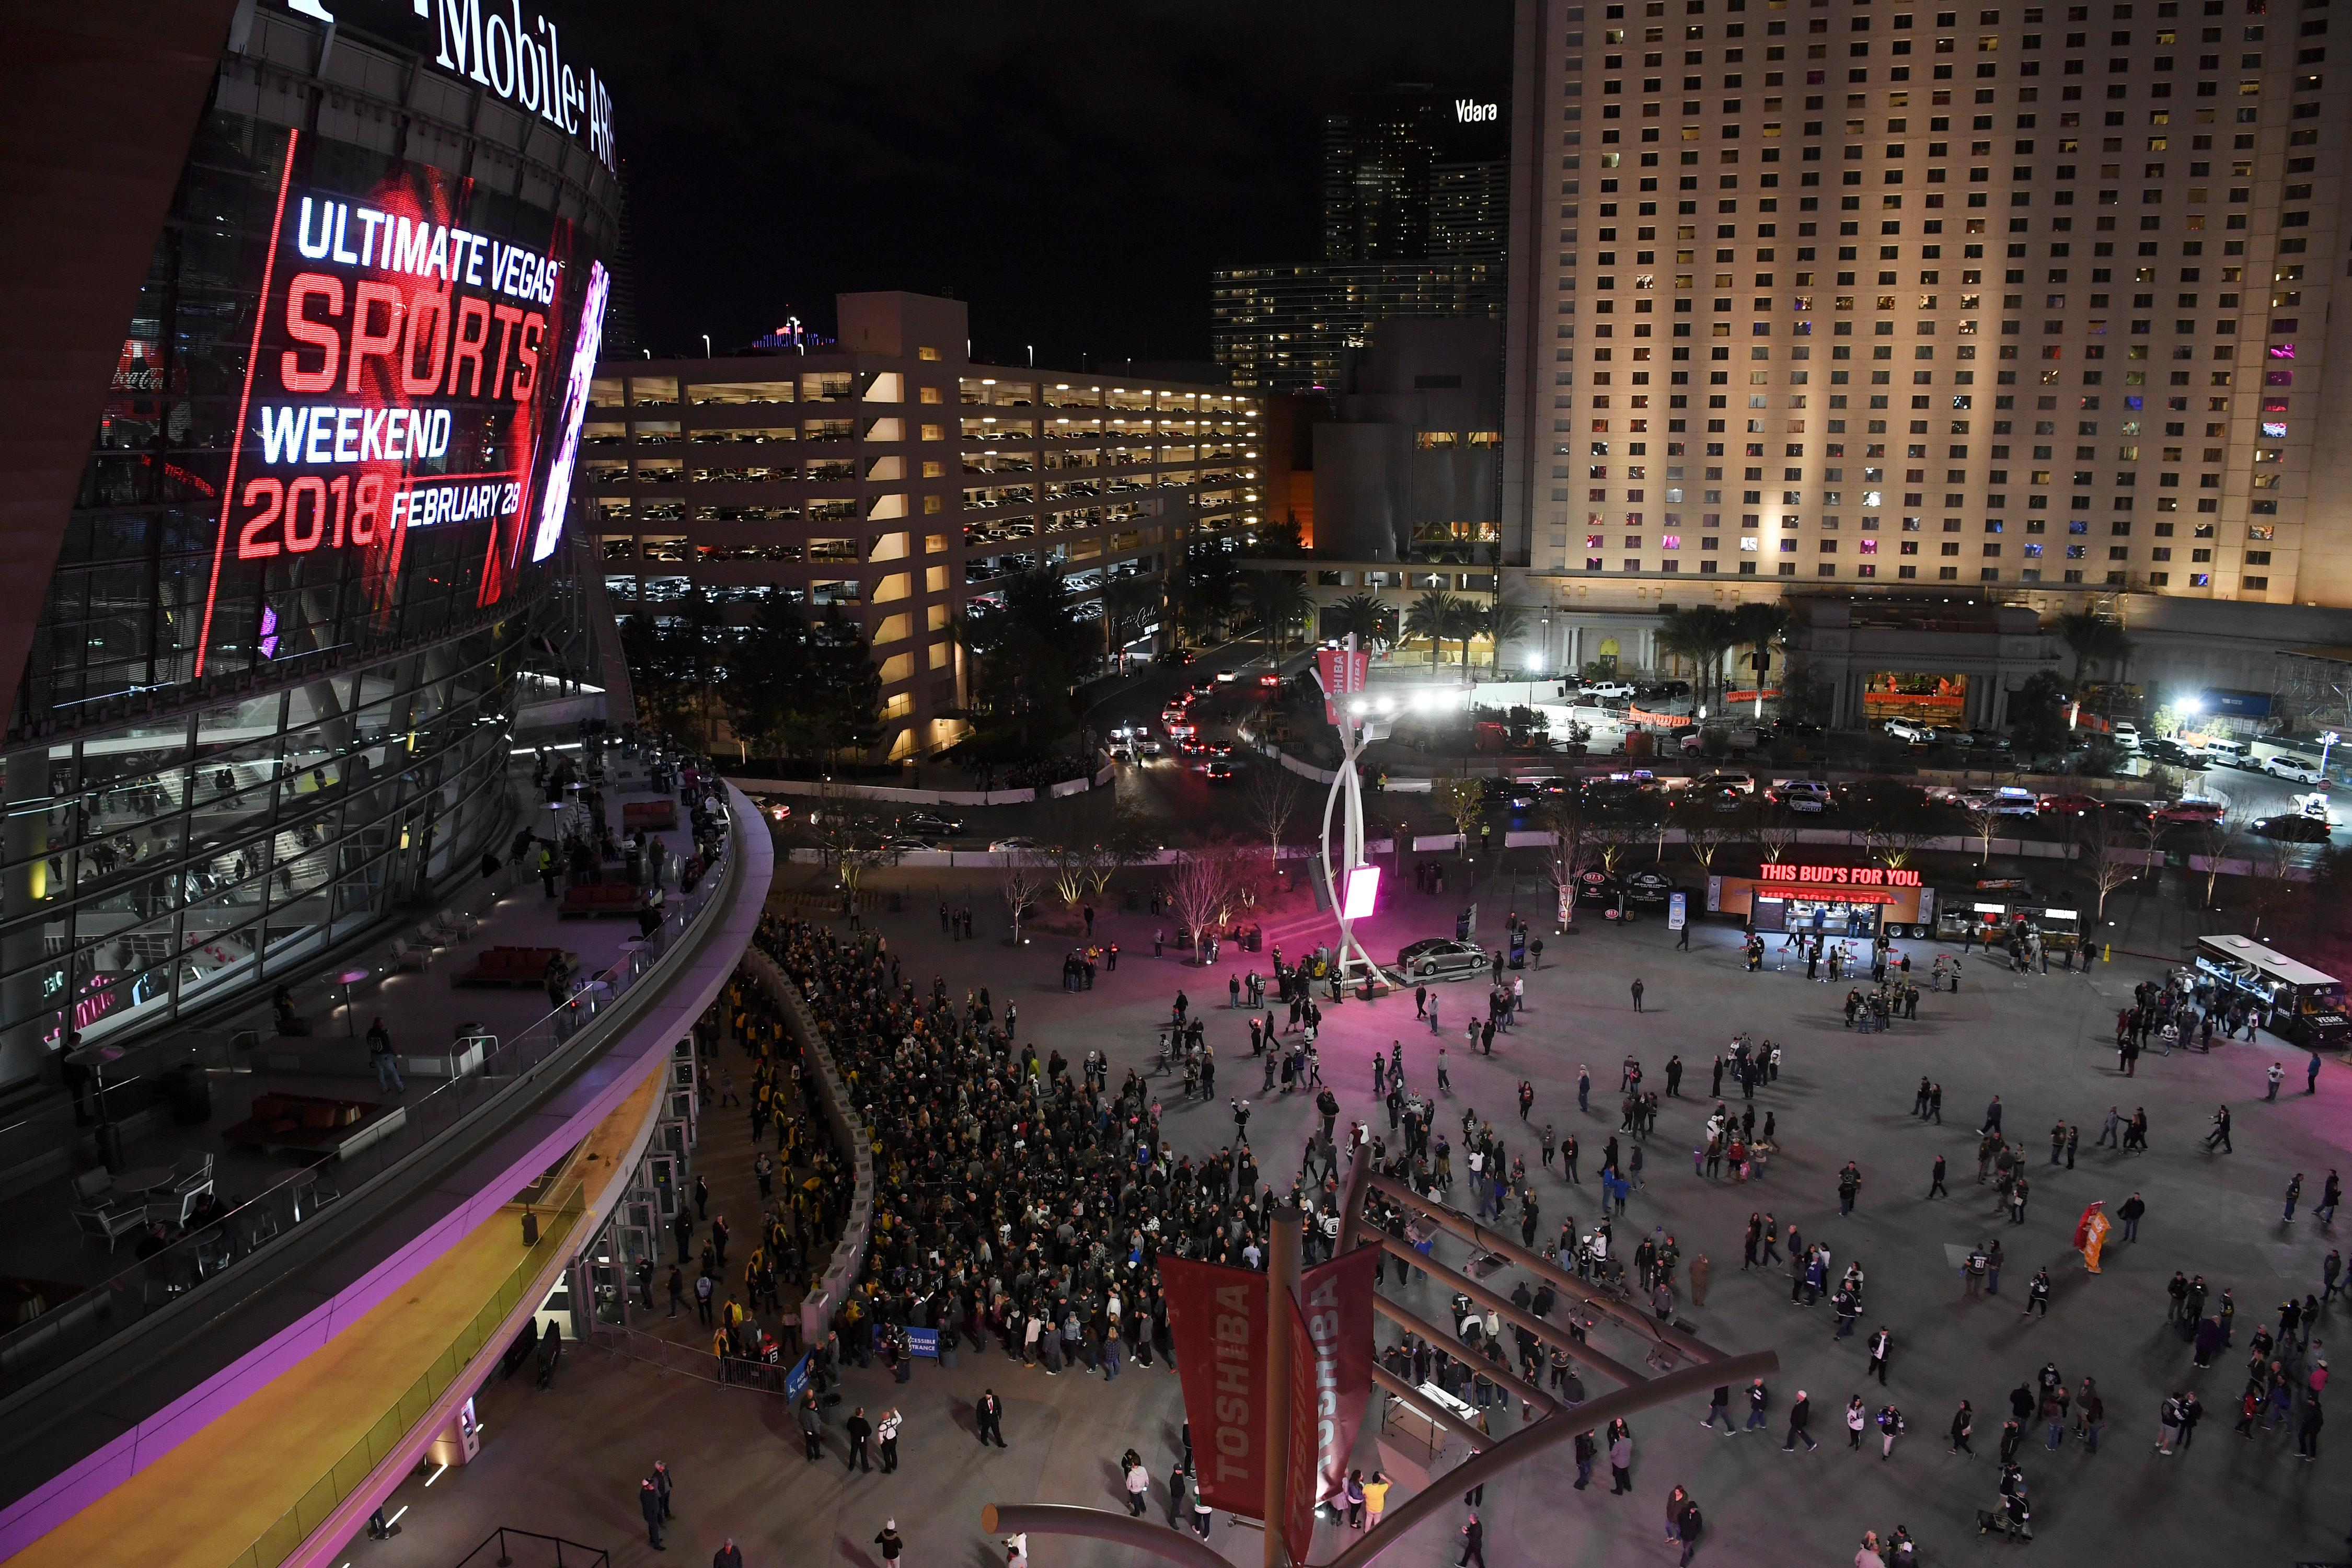 Fans line up at the entrance before the Vegas Golden Knights NHL hockey game against the Los Angeles Kings Tuesday, February 27, 2018, at T-Mobile Arena in Las Vegas. Los Angeles won 4-1. CREDIT: Sam Morris/Las Vegas News Bureau